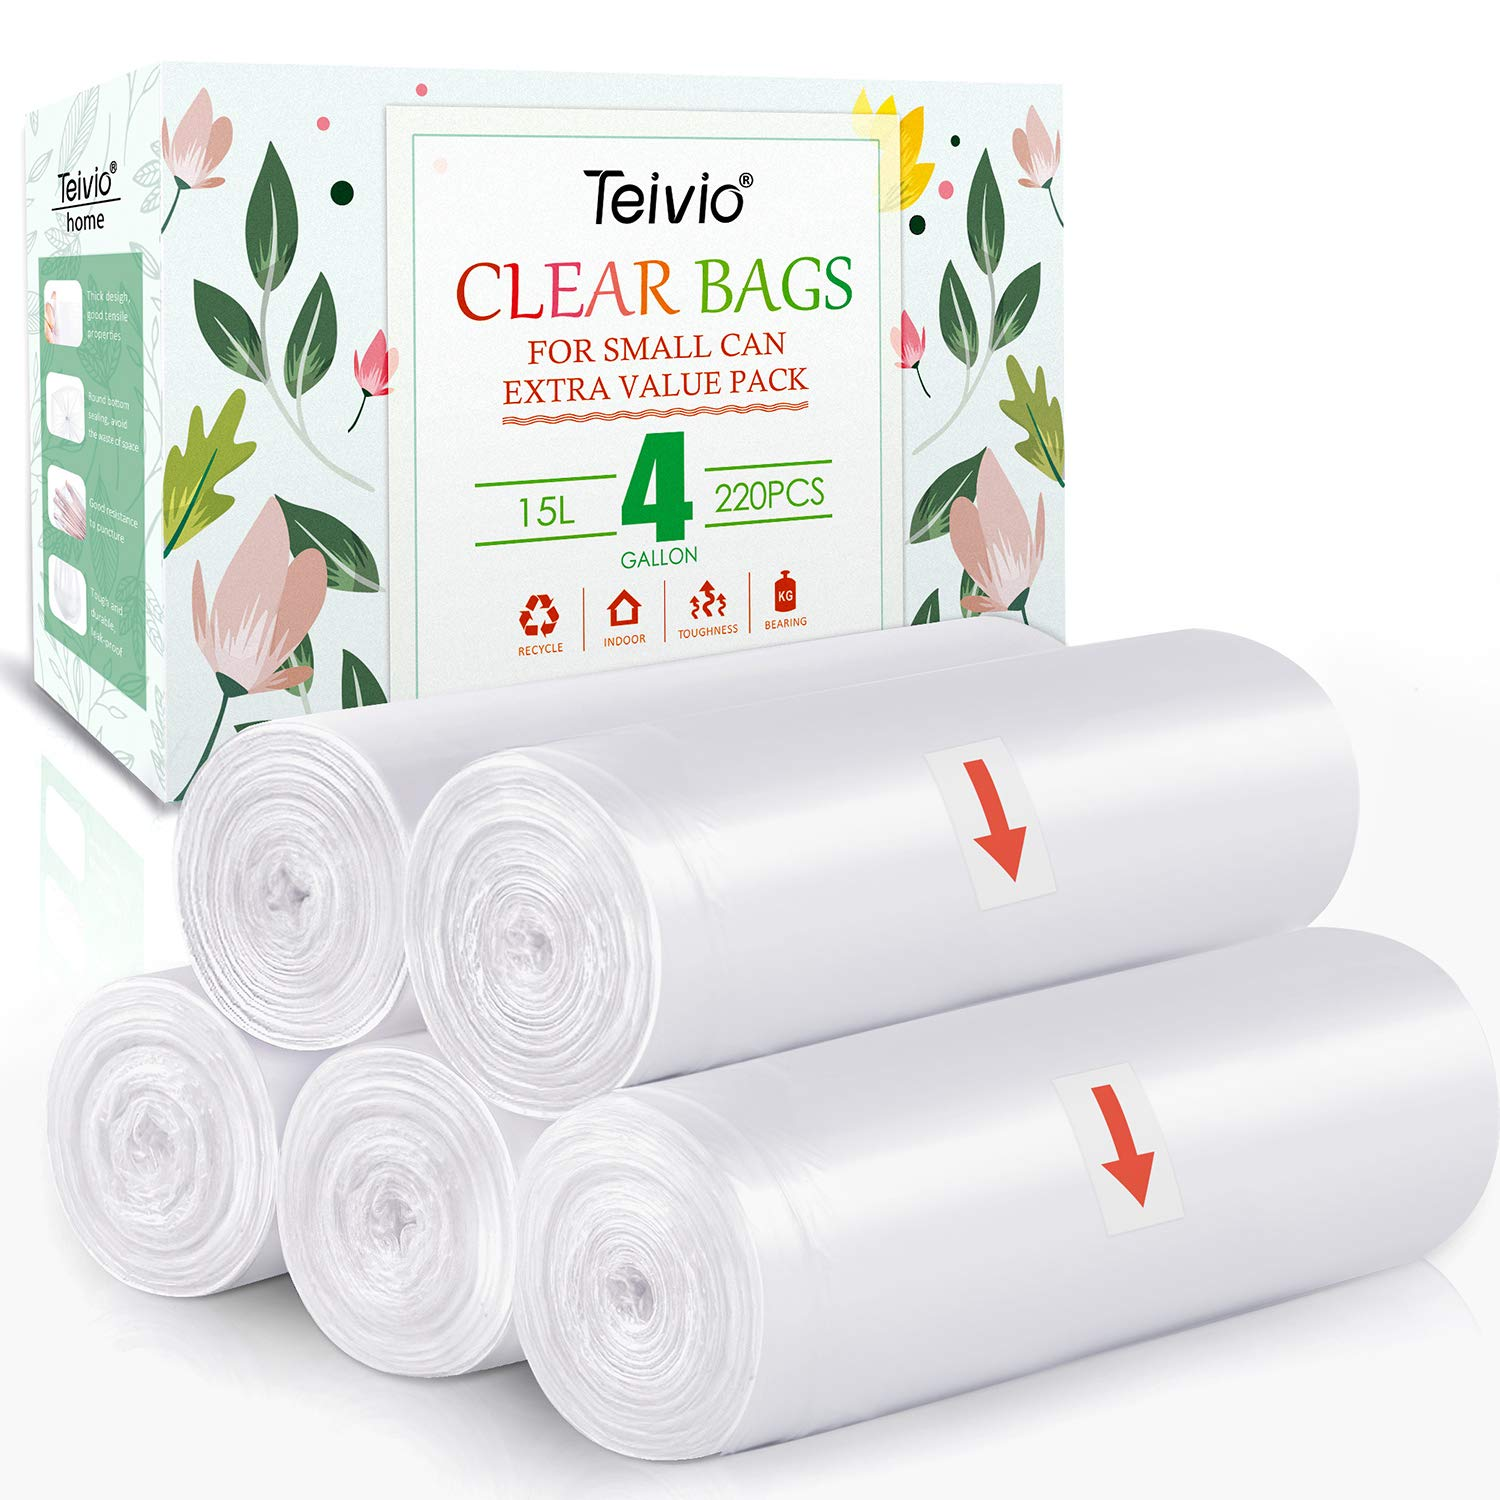 4 Gallon 220 Counts Strong Trash Bags Garbage Bags, Bathroom Trash Can Bin Liners, Small Plastic Bags for home office kitchen, Clear by Teivio